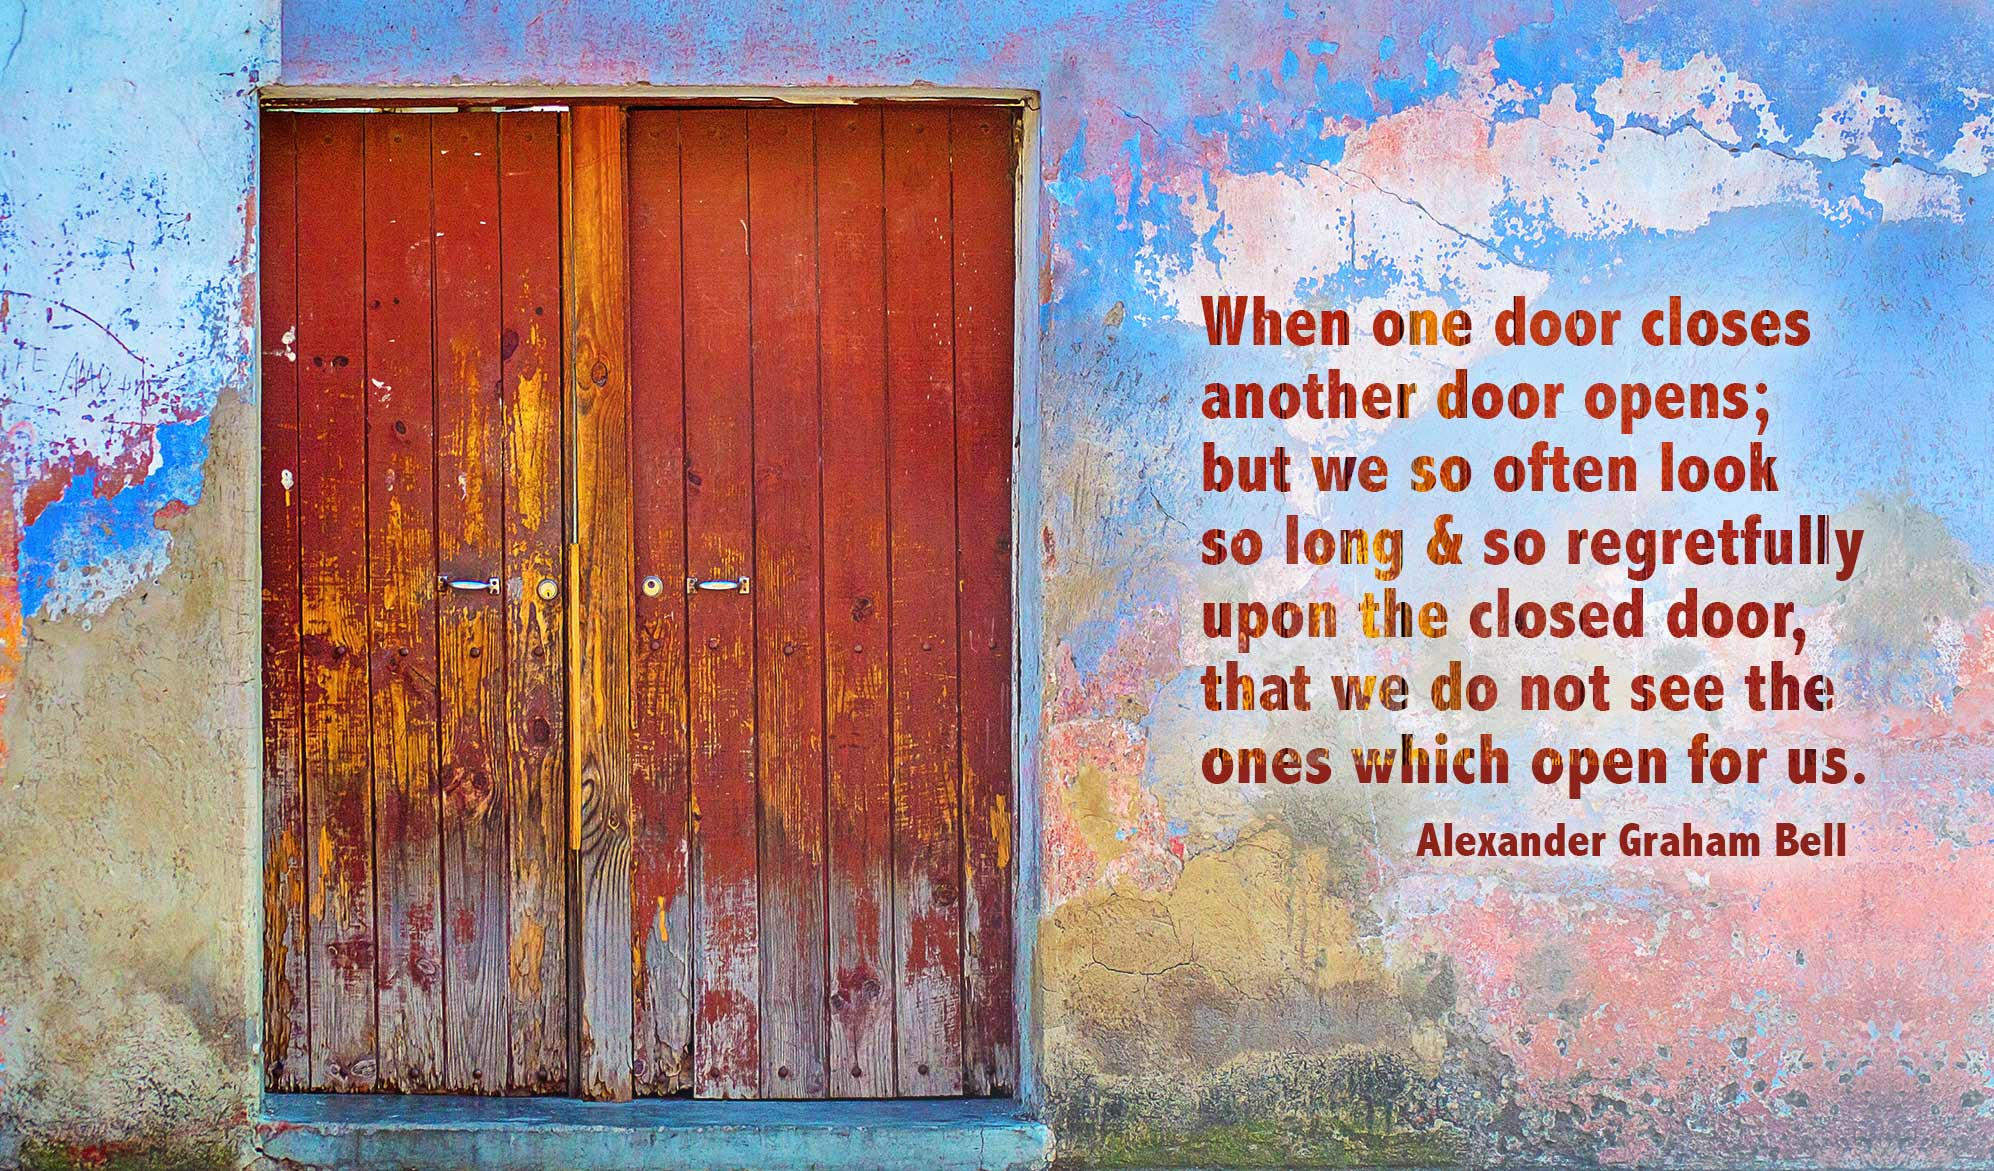 daily inspirational quote image: very colorful wall with multicolored door